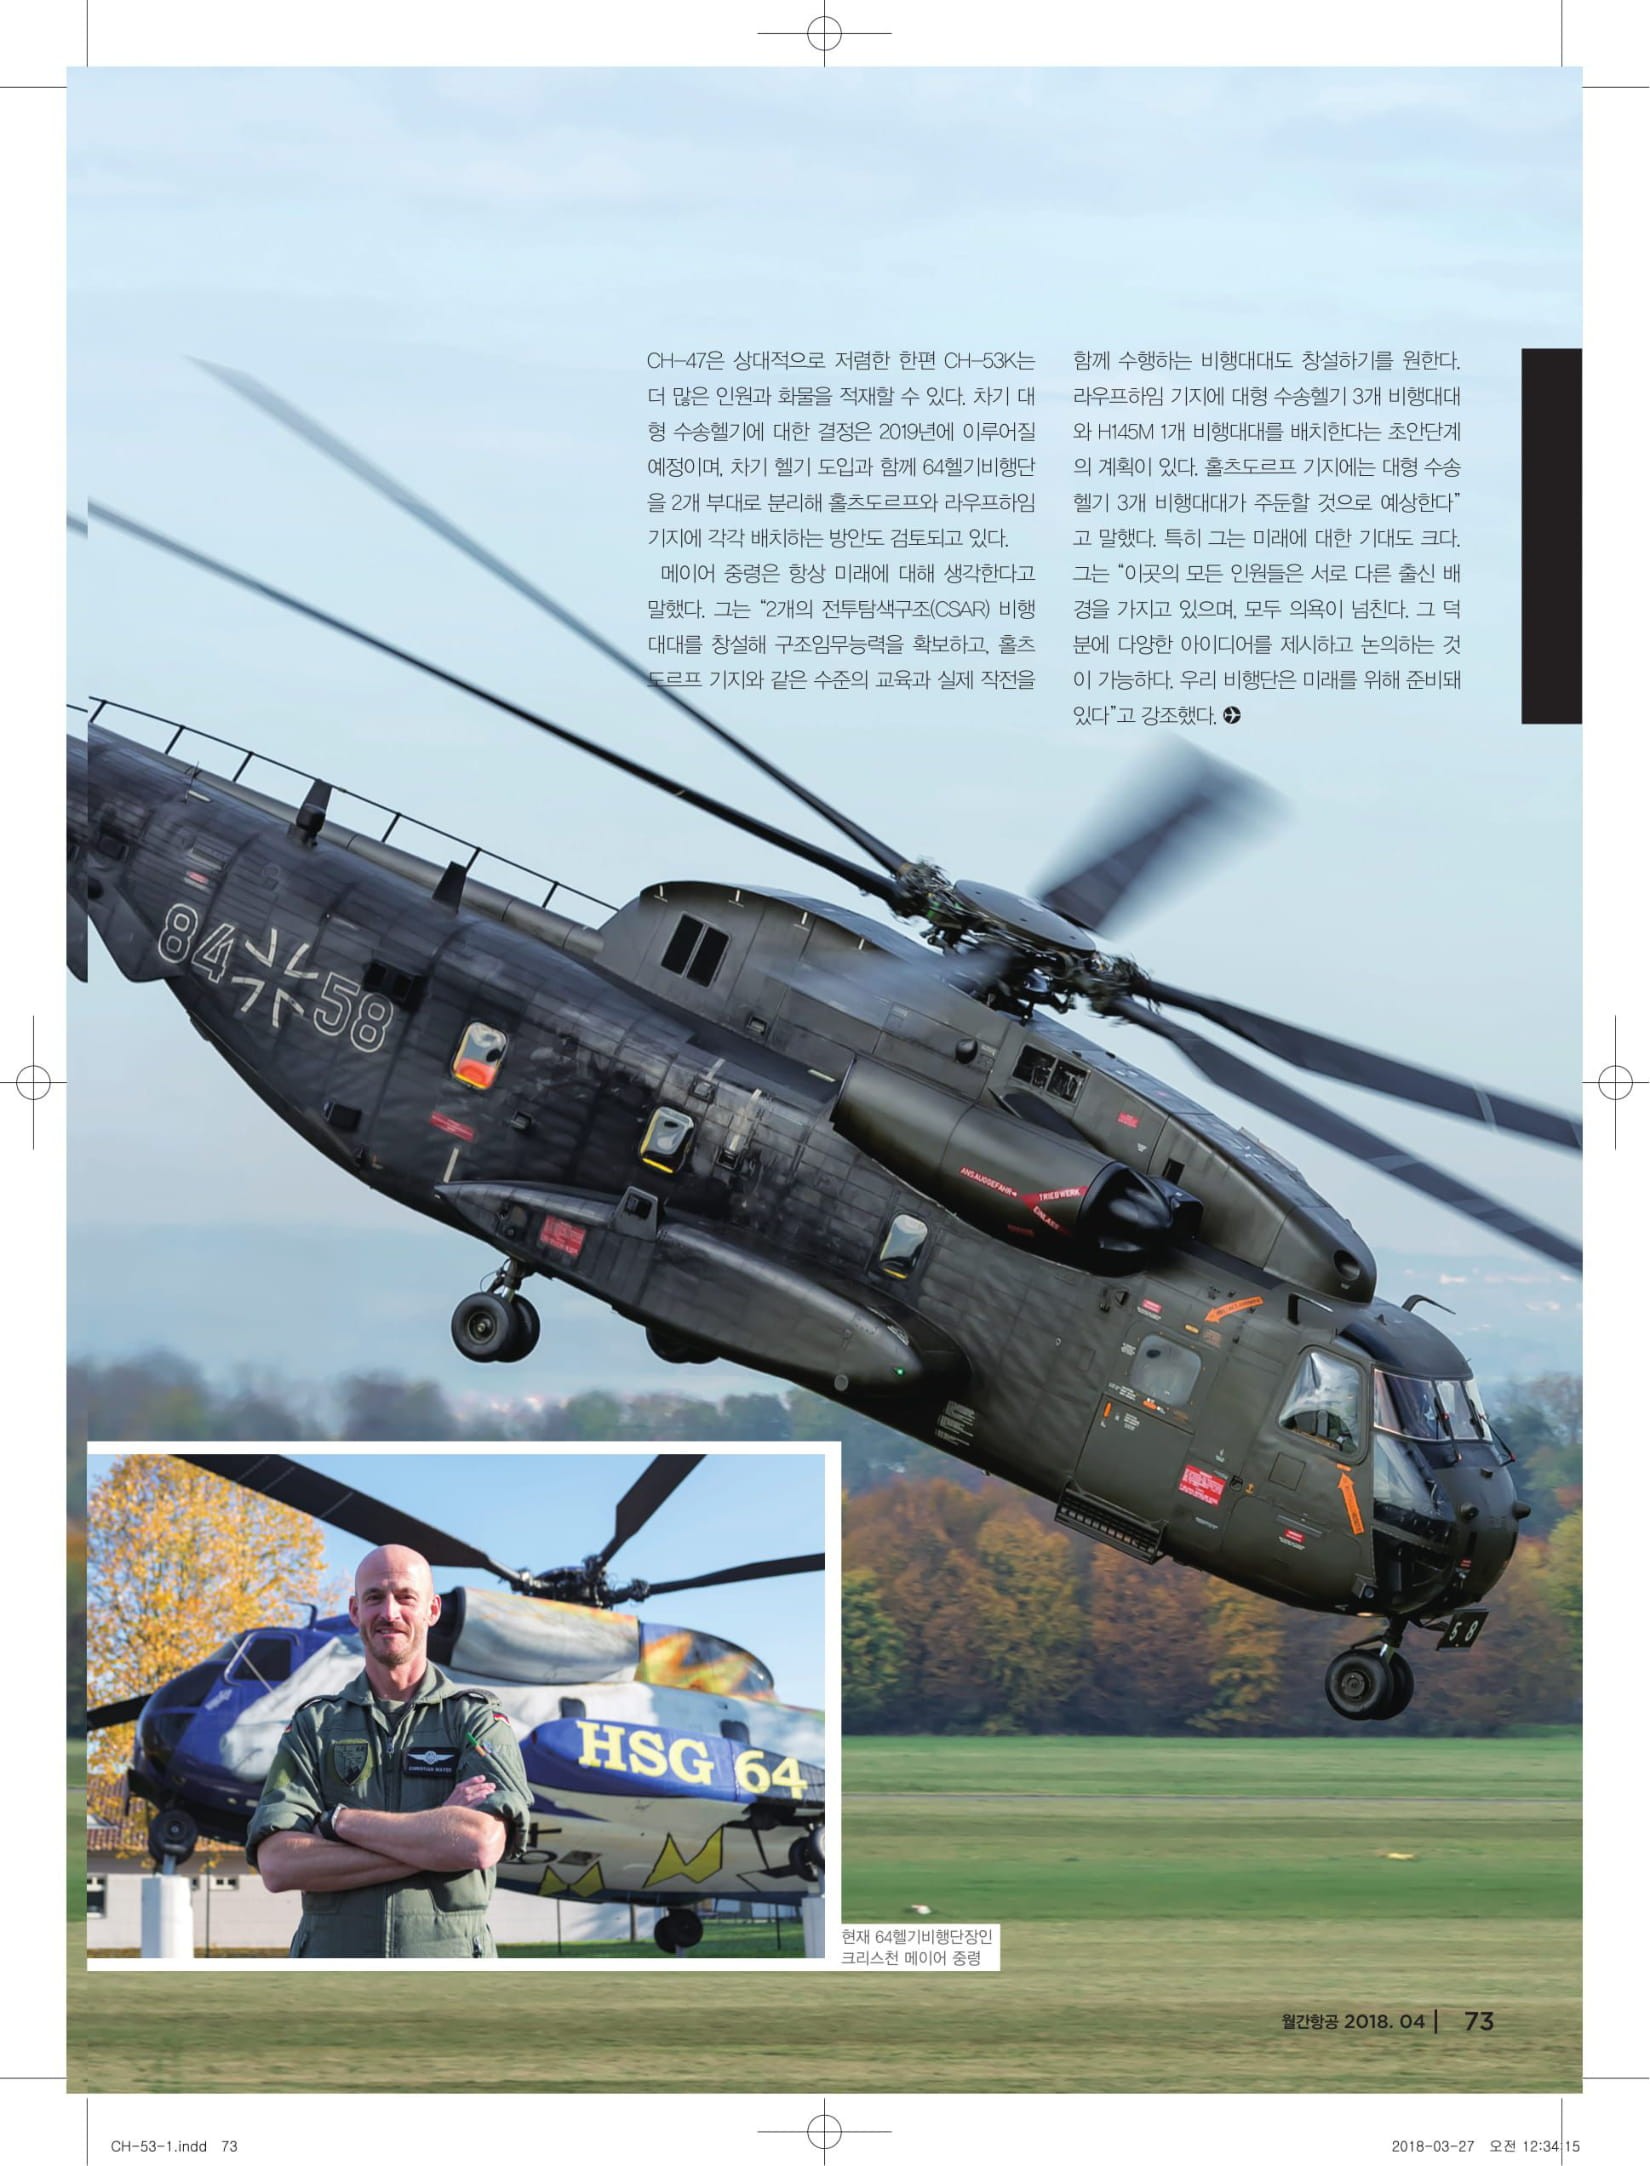 Aerospace & Defense (Korea)_CH53 HSG64 Laupheim-11